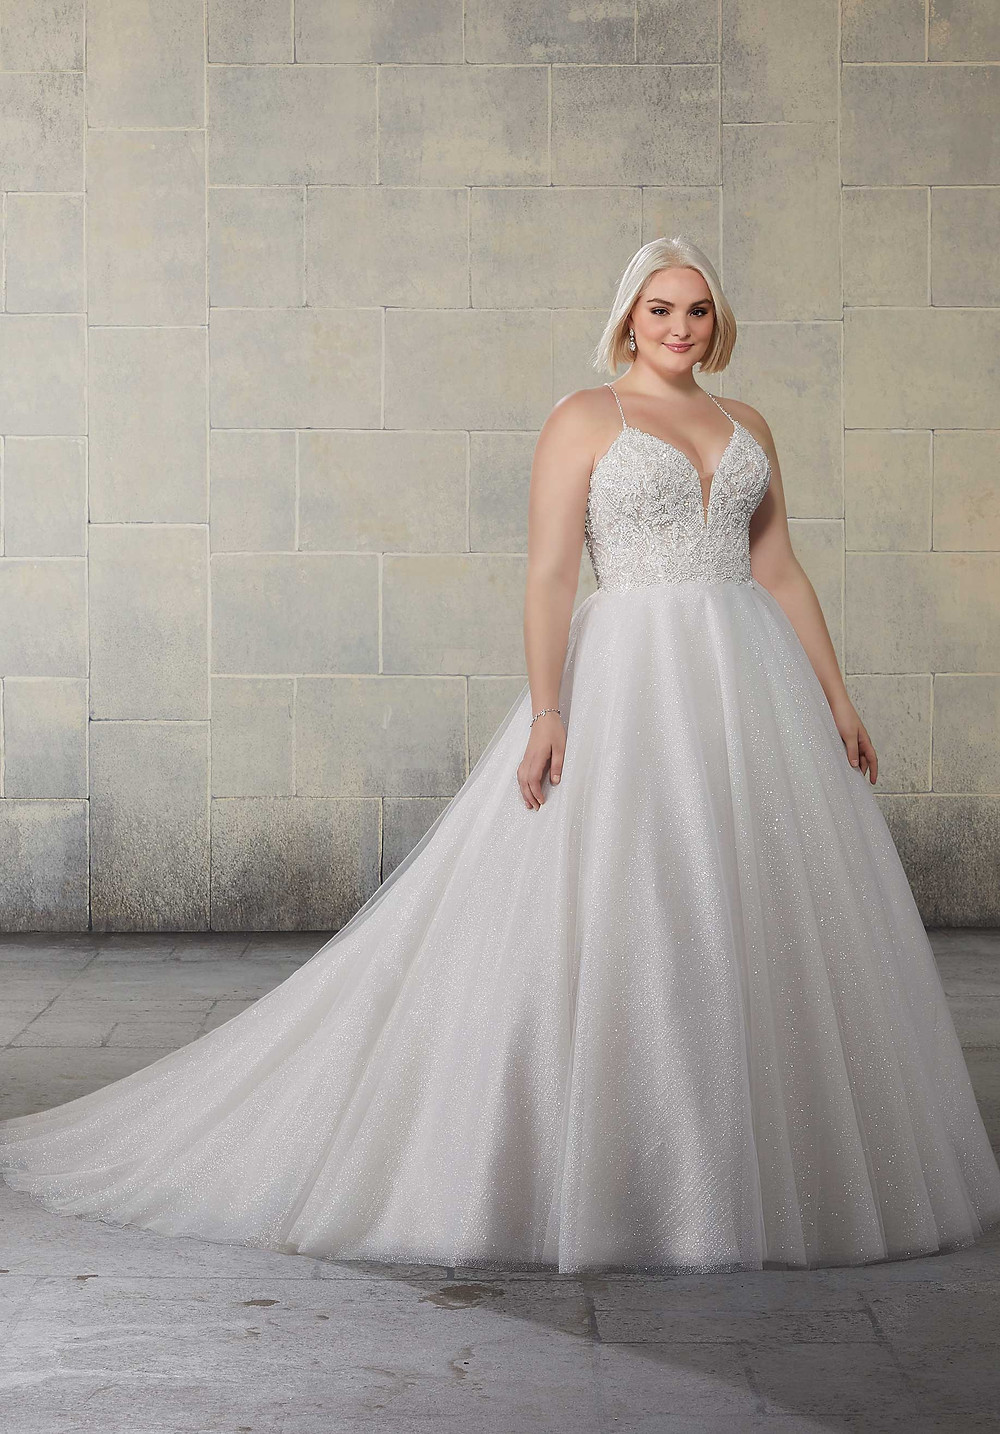 Starlet gown form Mori Lee available at Blush Bridal/ Ball gown with cris cross back.